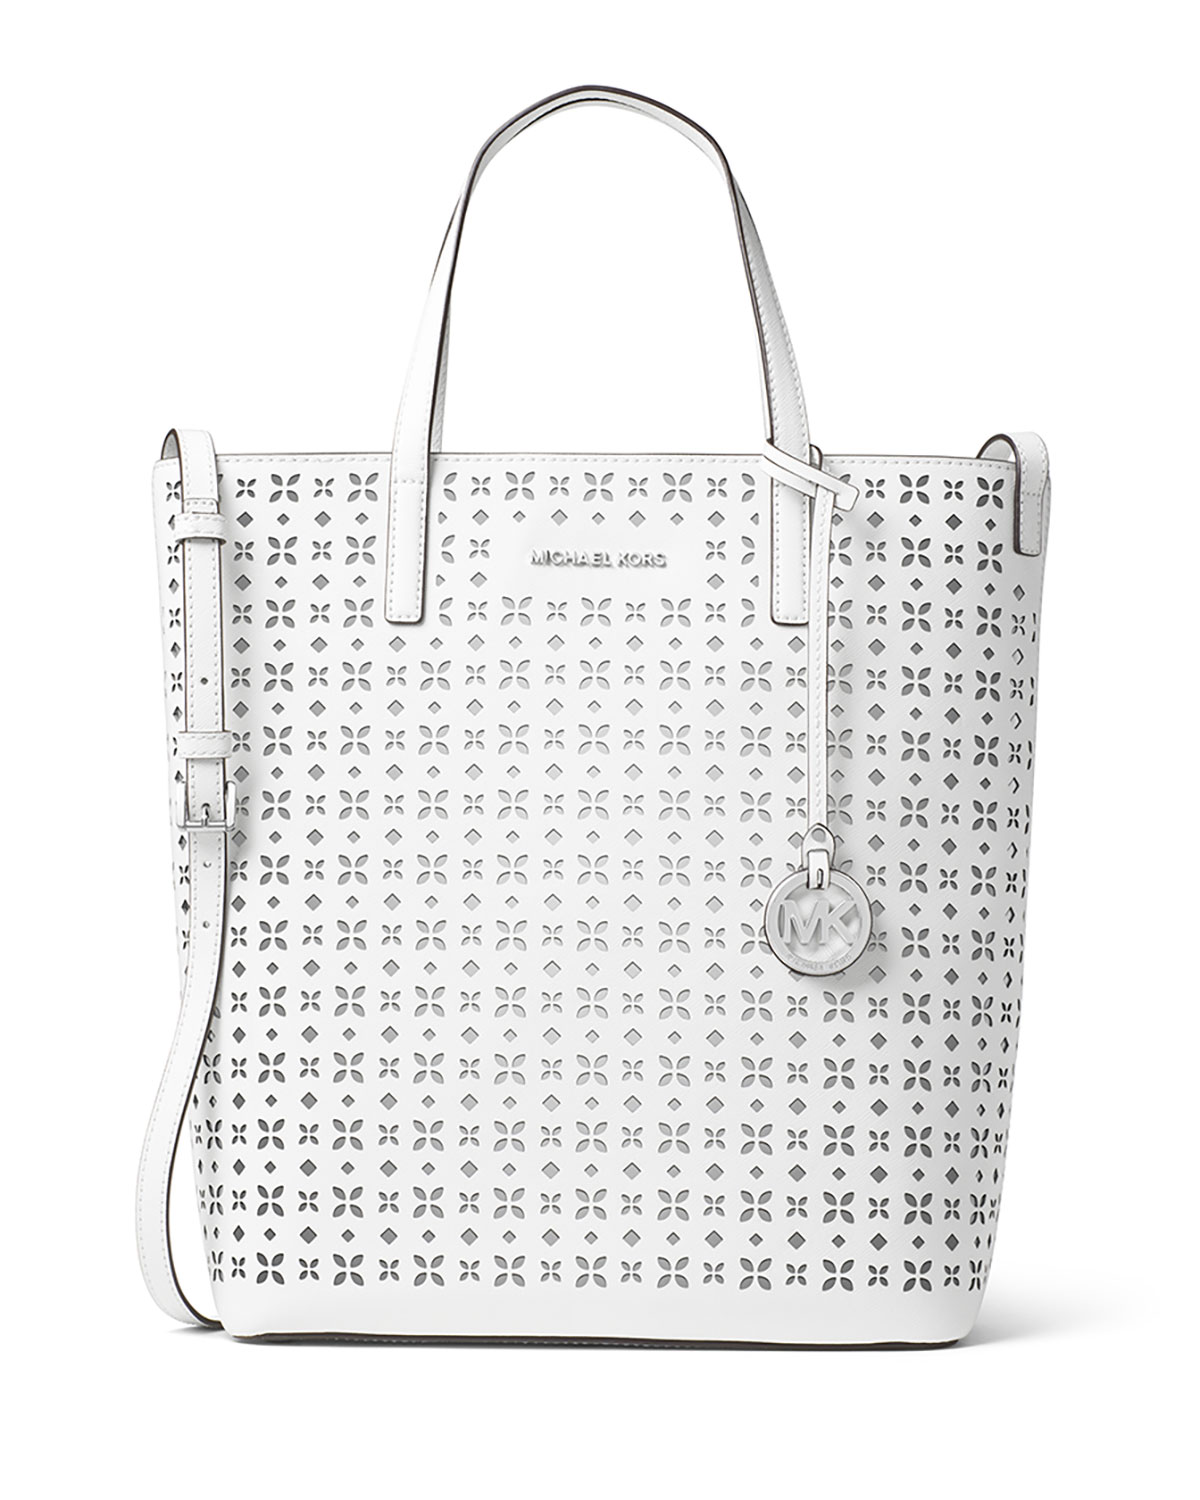 a6d5c1846157 MICHAEL Michael Kors Hayley Large Top-Zip Leather Tote Bag, White ...